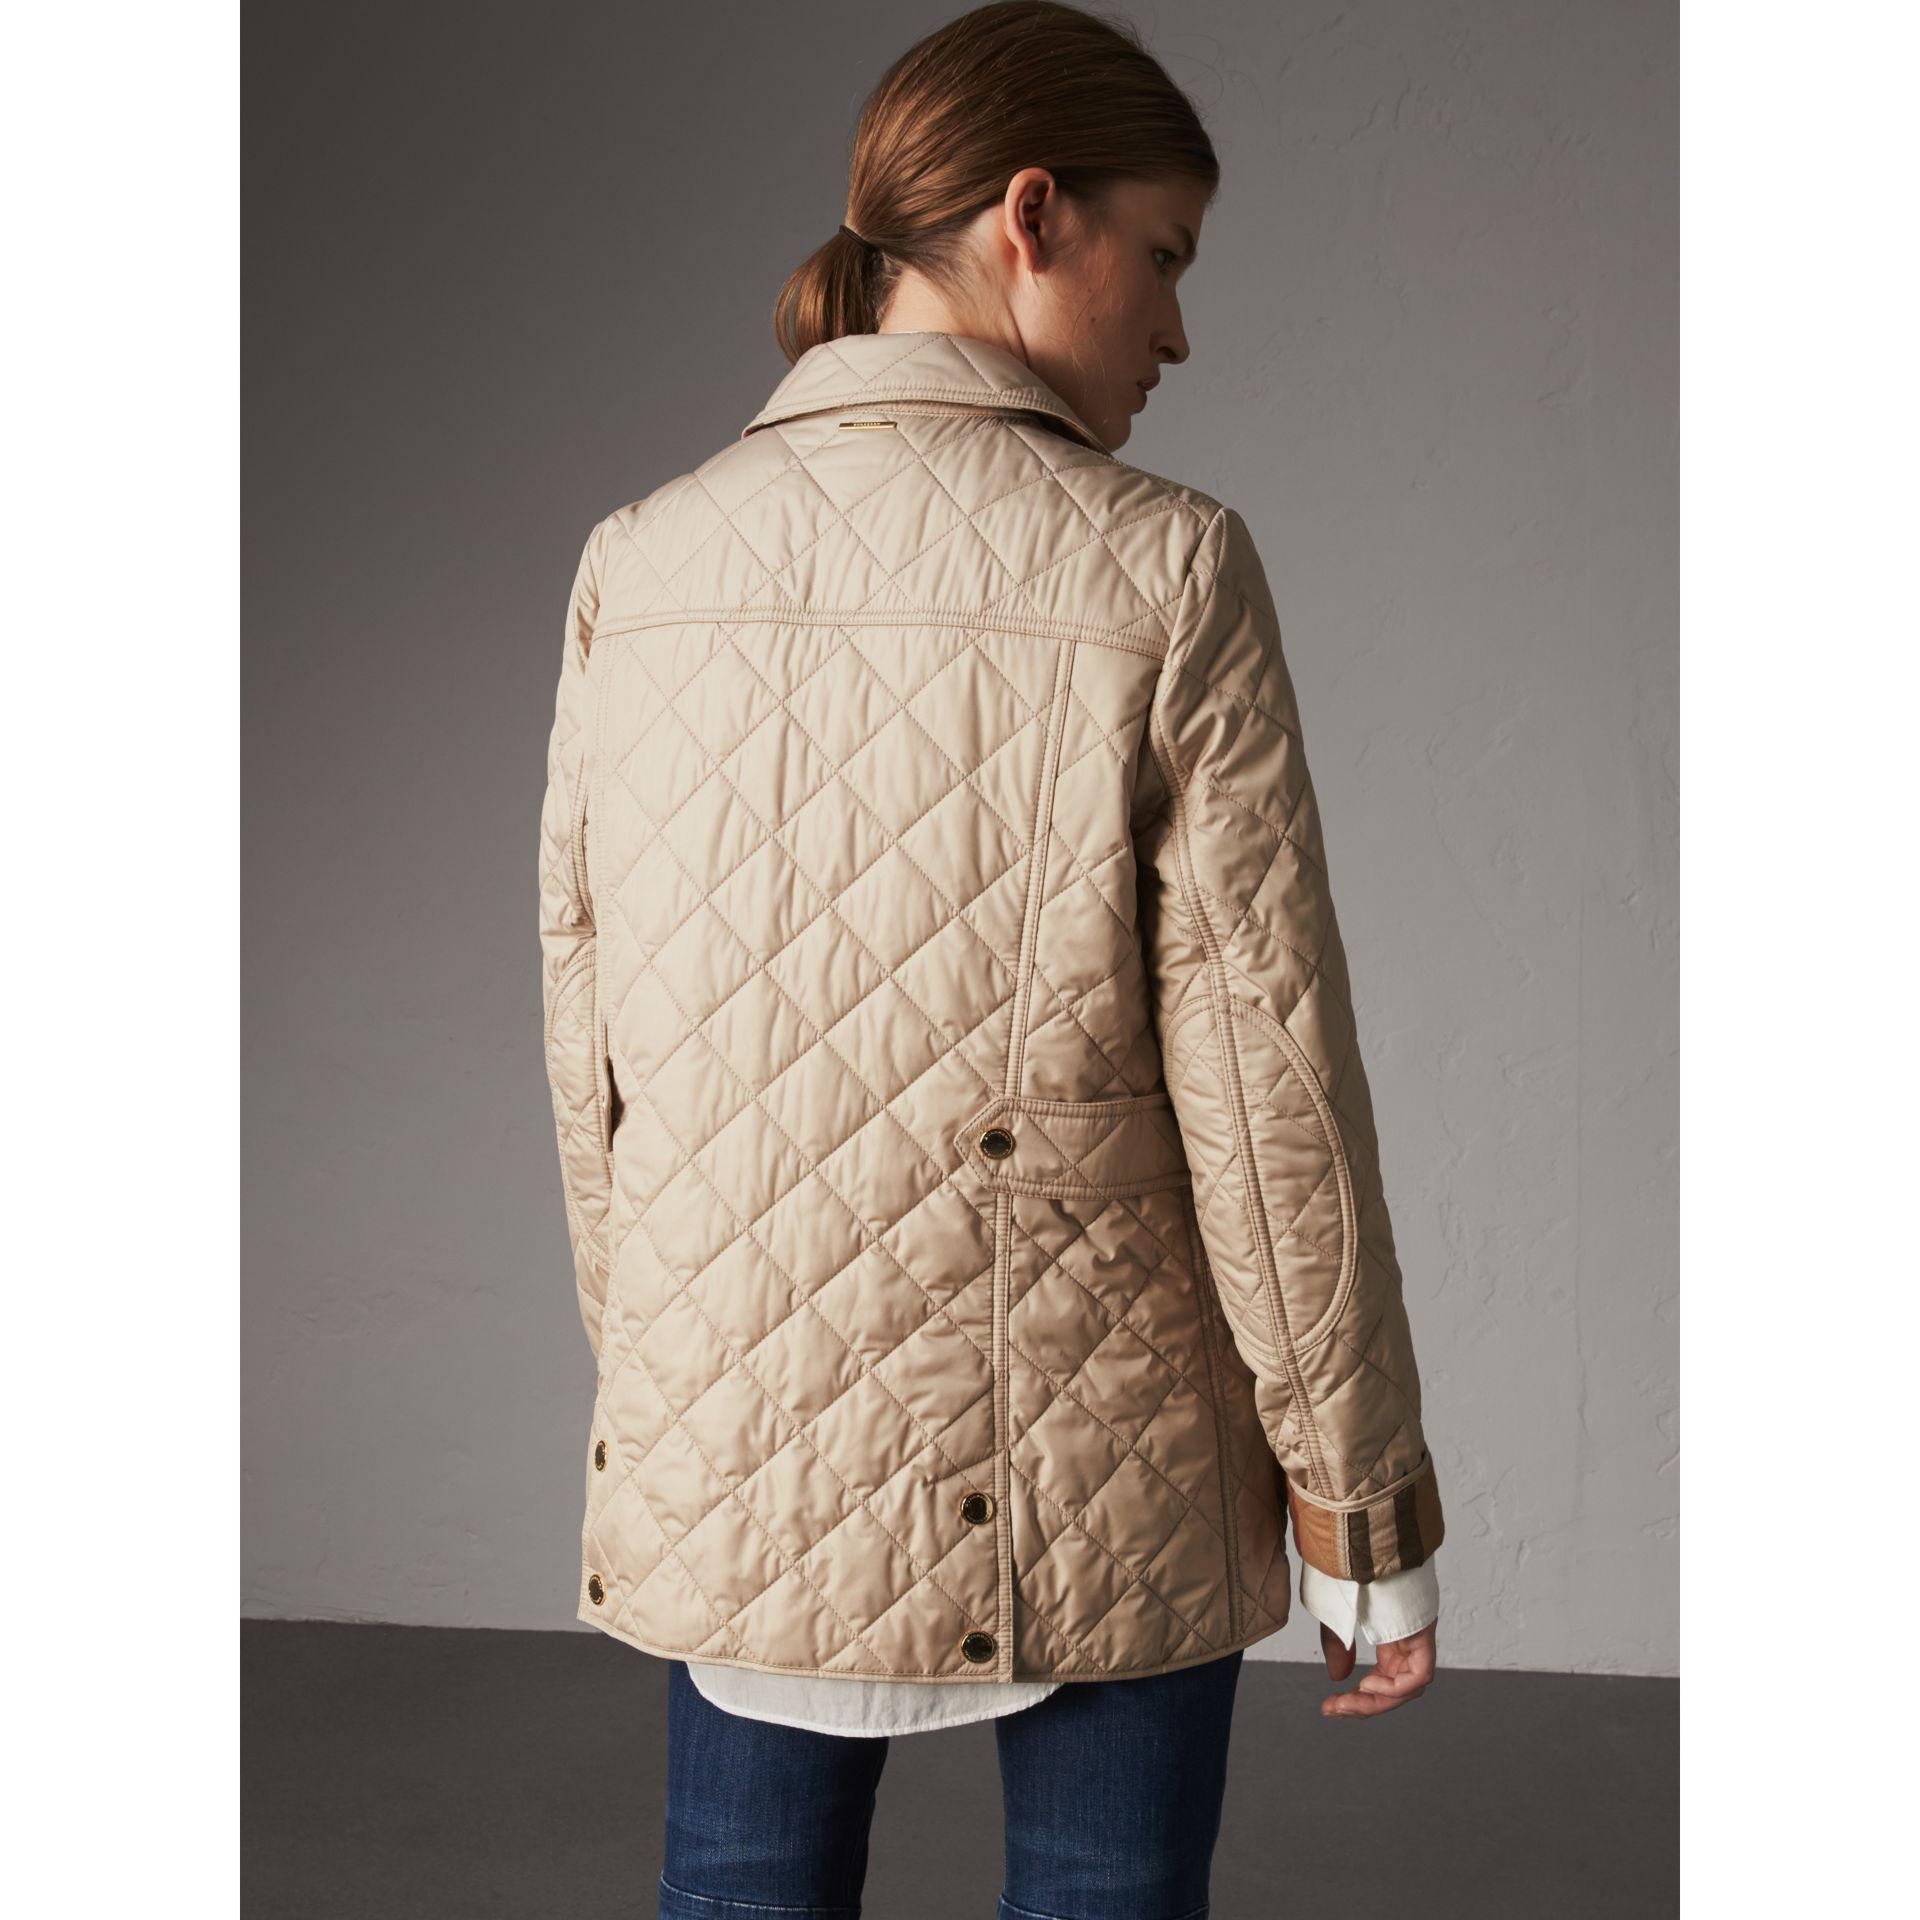 Lyst Burberry Check Detail Diamond Quilted Jacket Dark